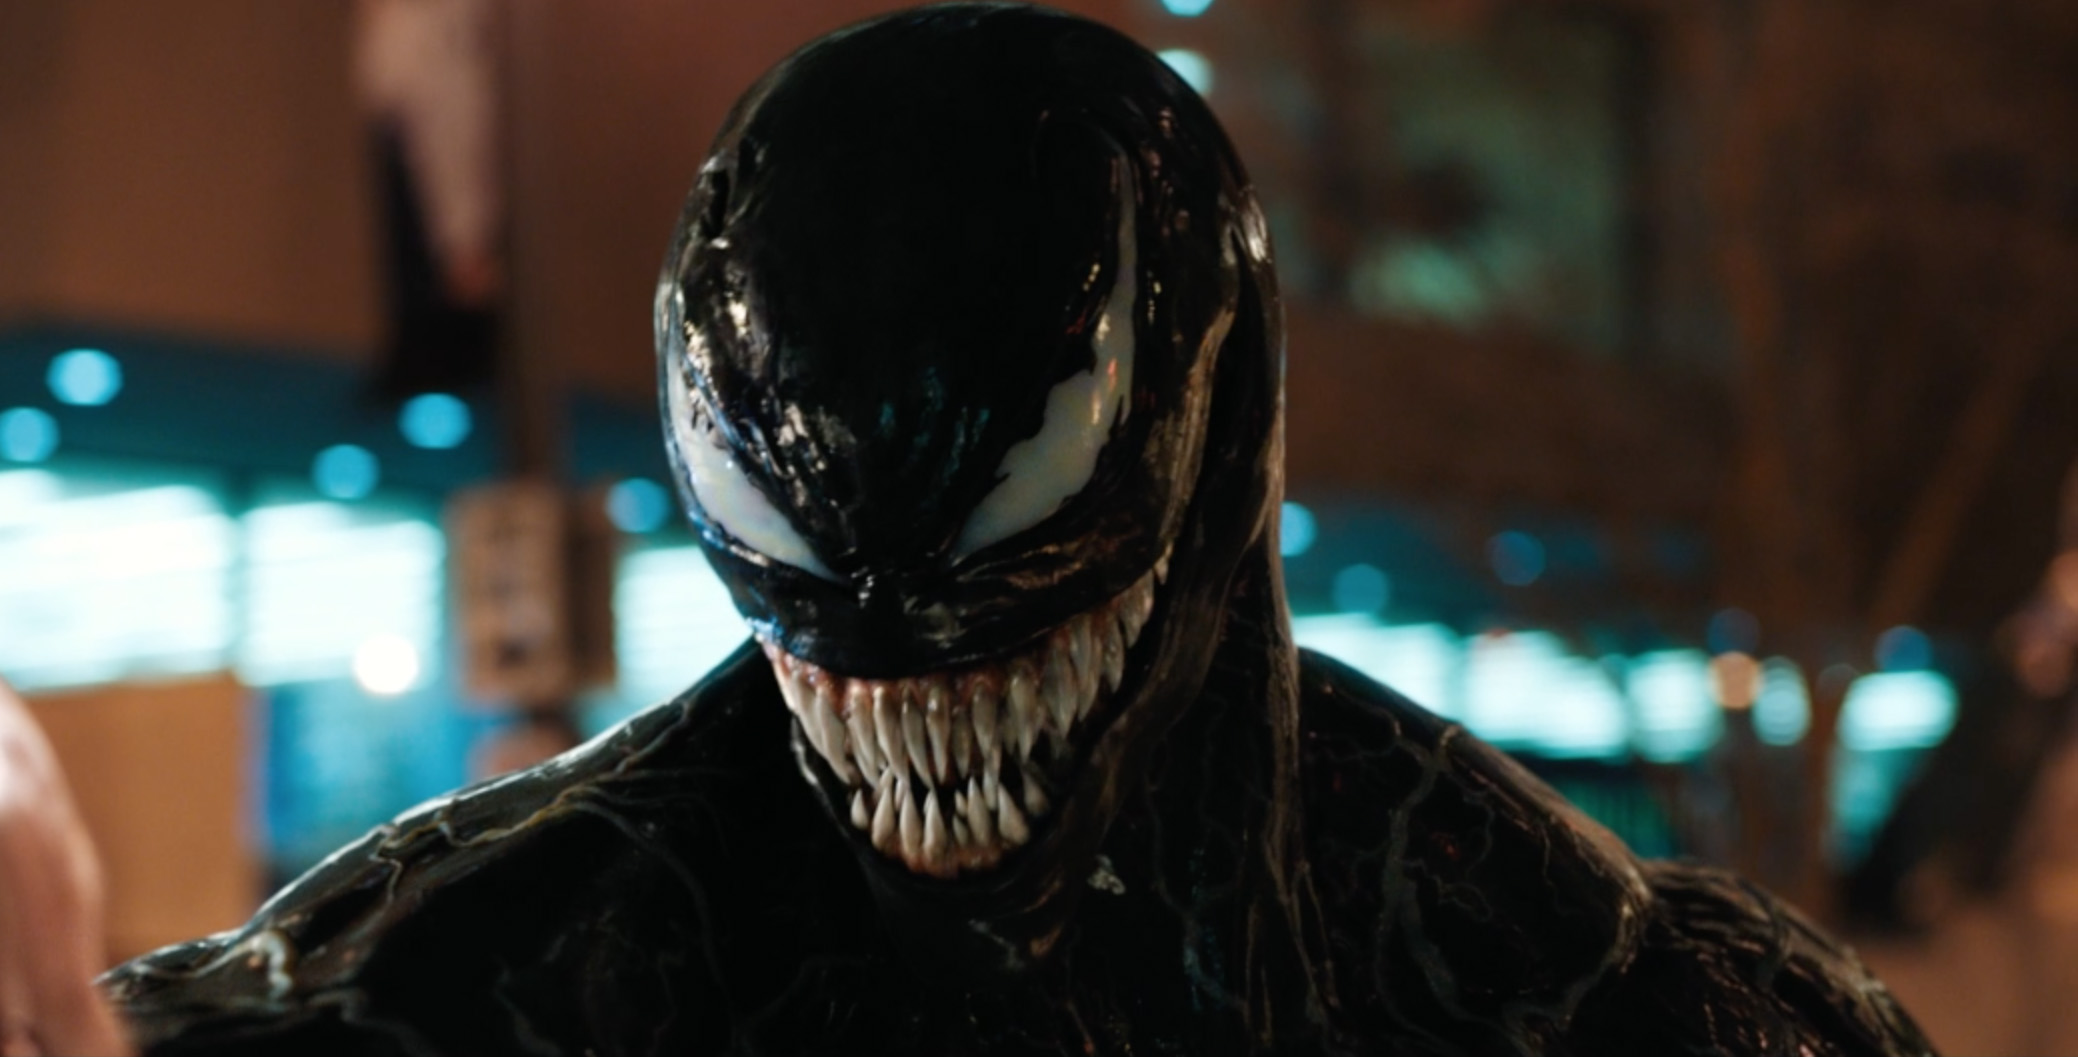 Watch the second trailer for 'Venom'